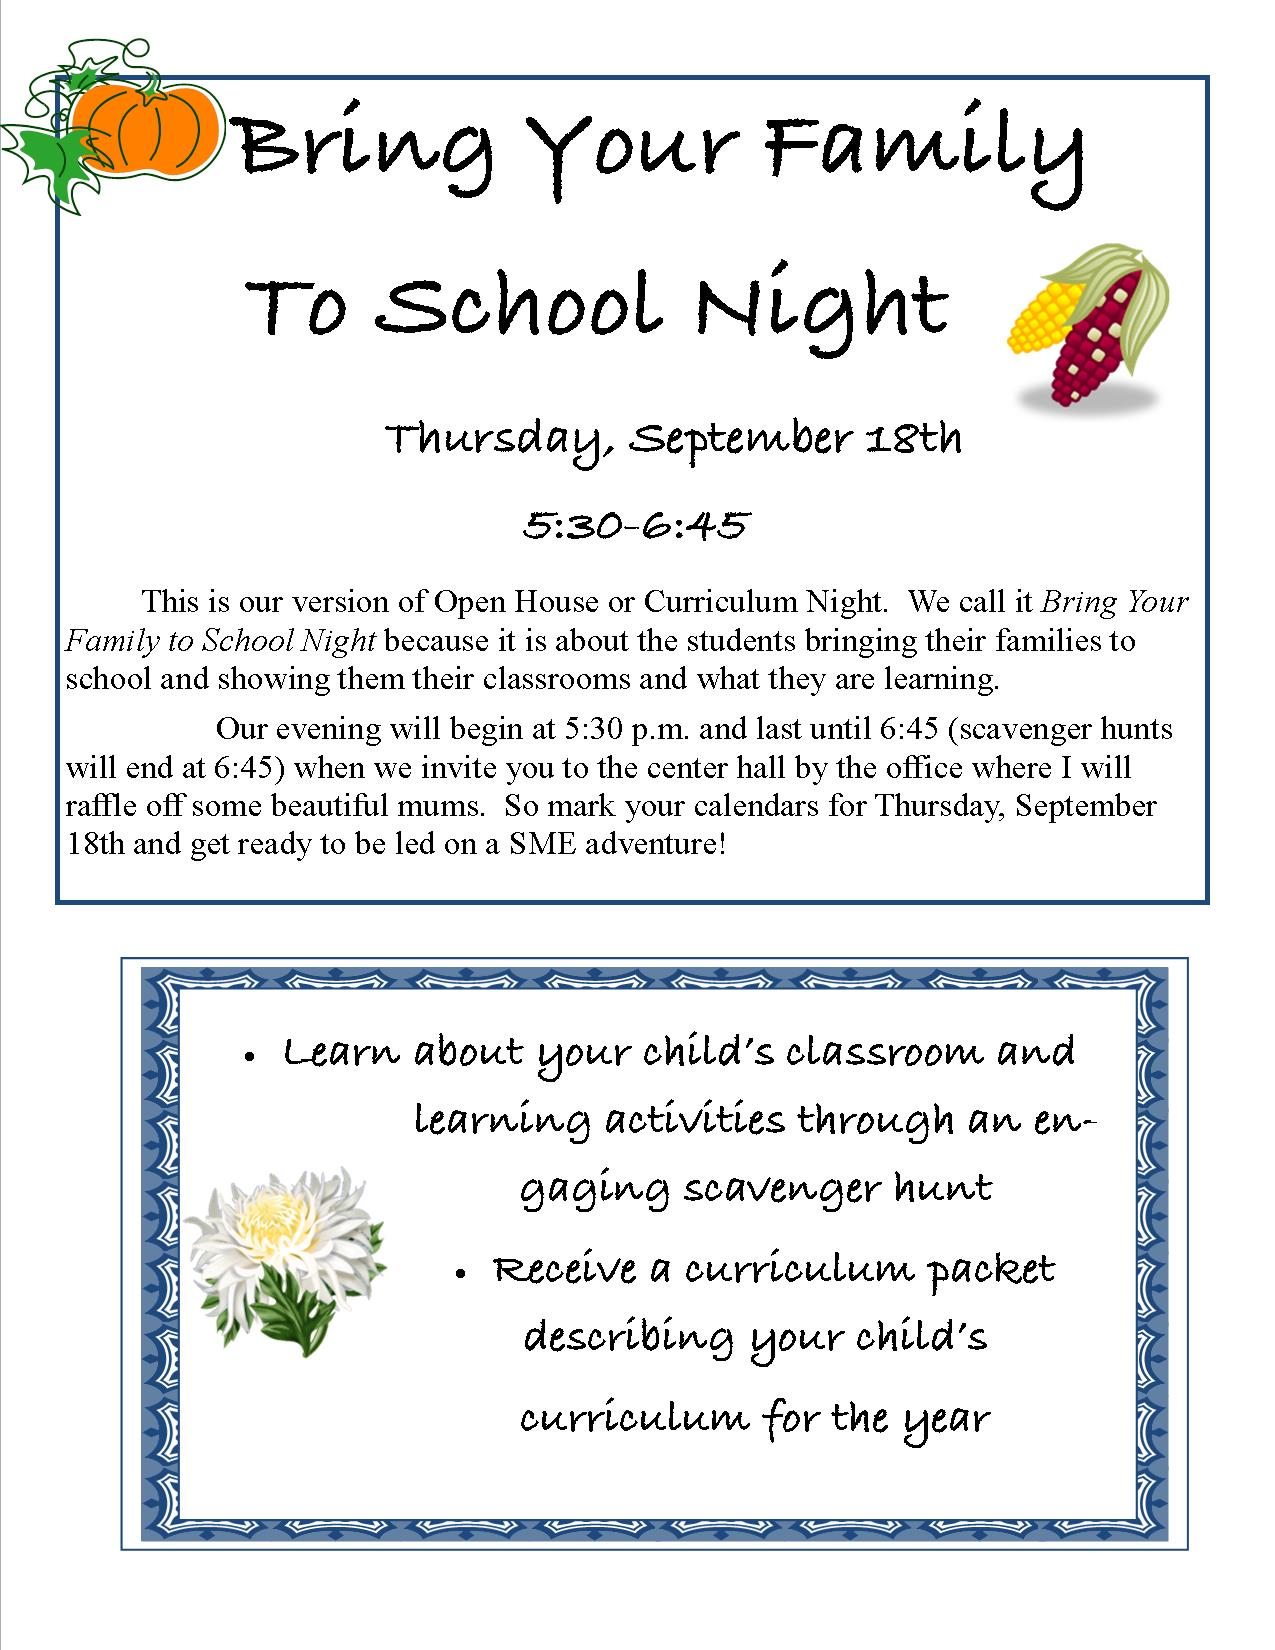 bring-your-family-to-school-night